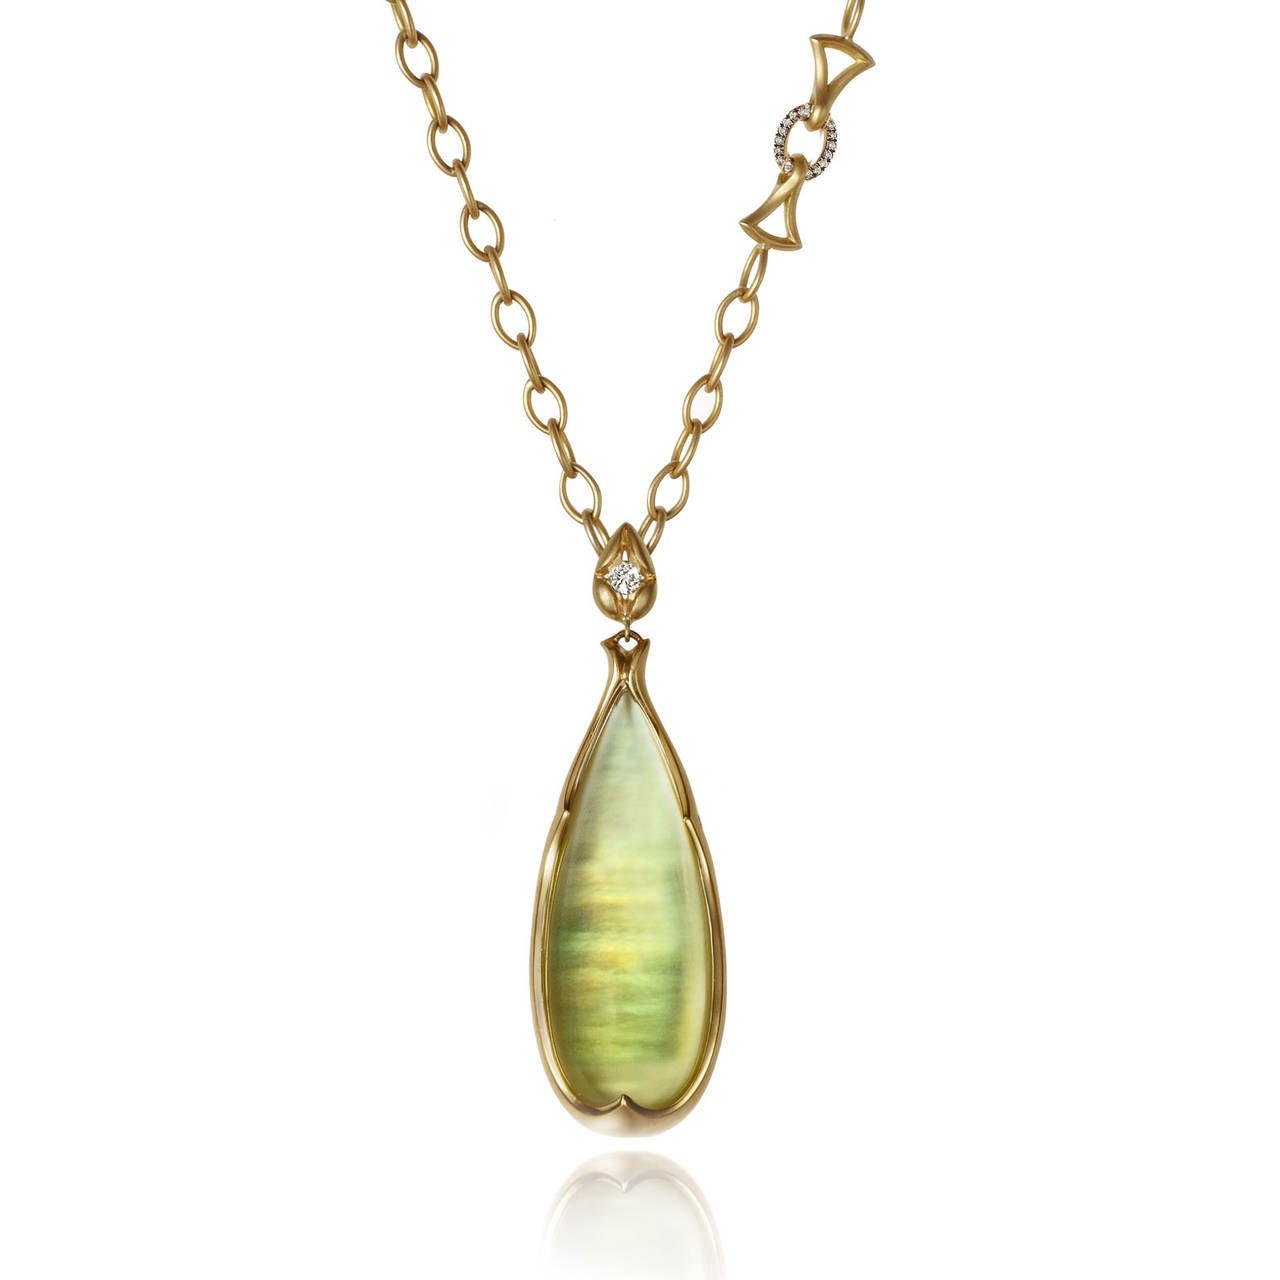 One of a Kind Phenom Pendant handcrafted in 18k yellow gold with two cabochon-cut lemon citrine drops laid over mother-of-pearl and attached to a 0.25 carat round, brilliant-cut diamond bail. The pendant is 2 inches in length and has incredible